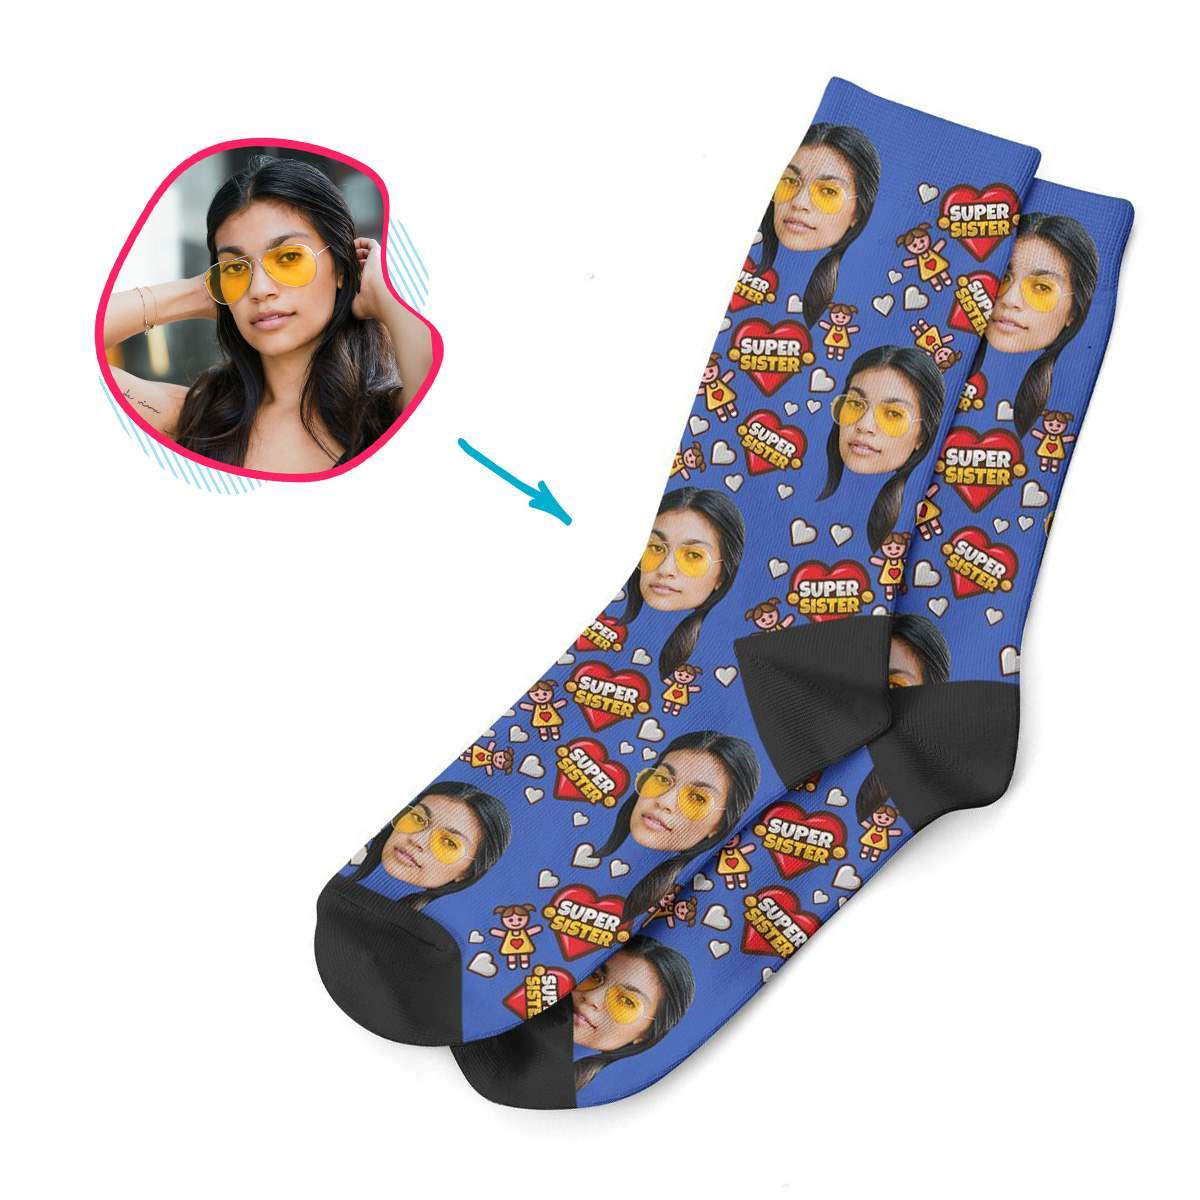 red Super Sister socks personalized with photo of face printed on them